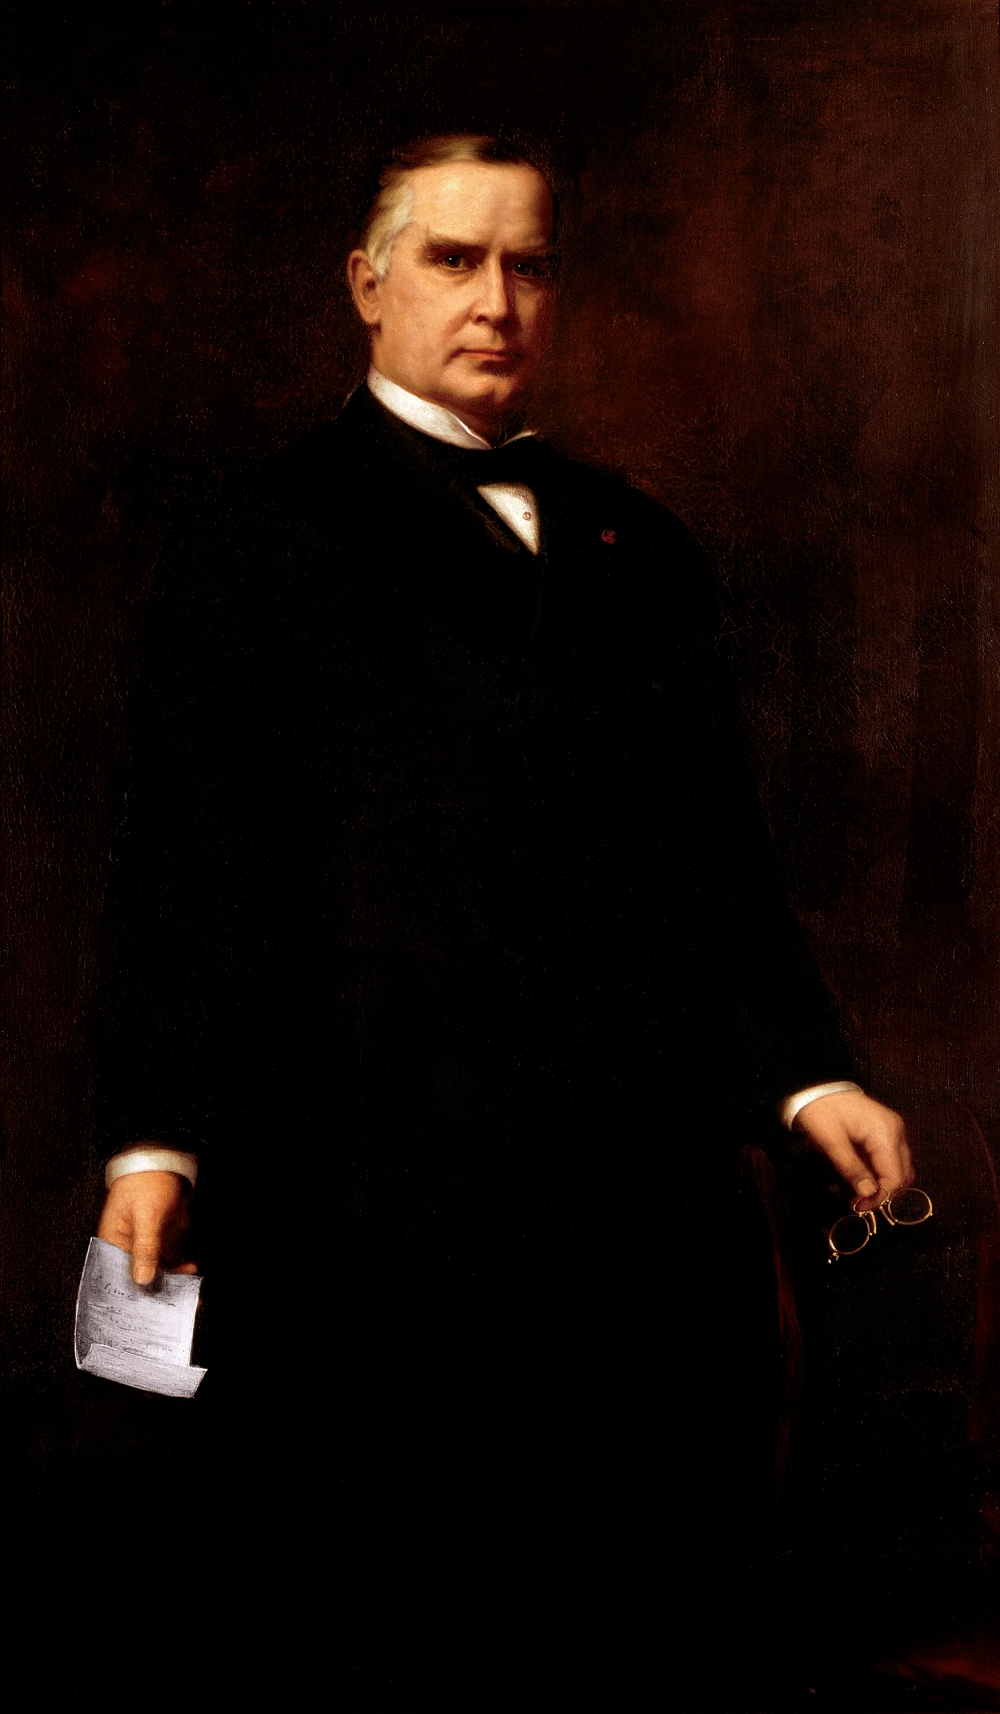 Portraits: William McKinley | MowryJournal.com